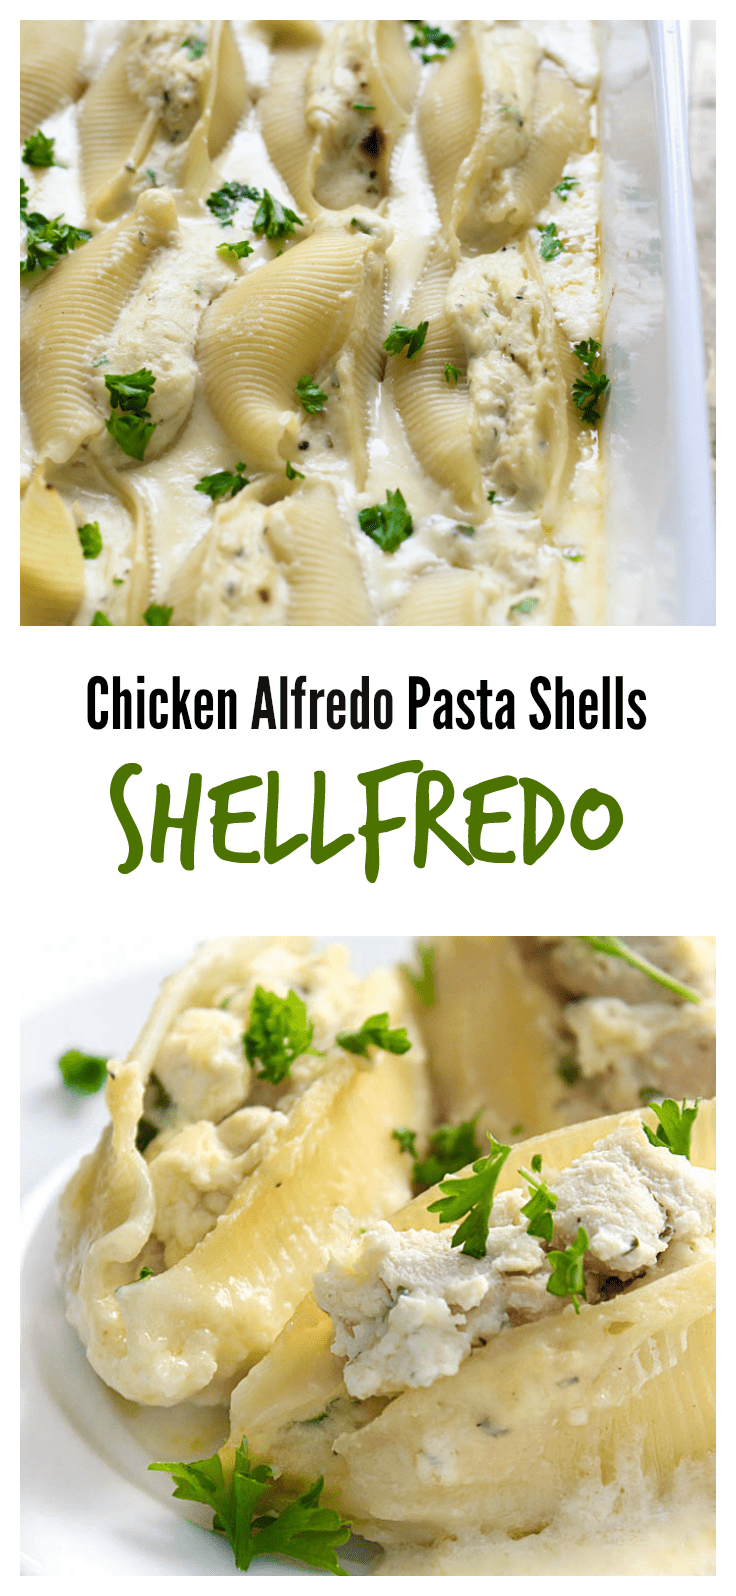 Chicken Alfredo pasta shells are decadent and delicious. These shellfredos have ricotta chicken stuffed shells swimming in a rich Alfredo sauce.